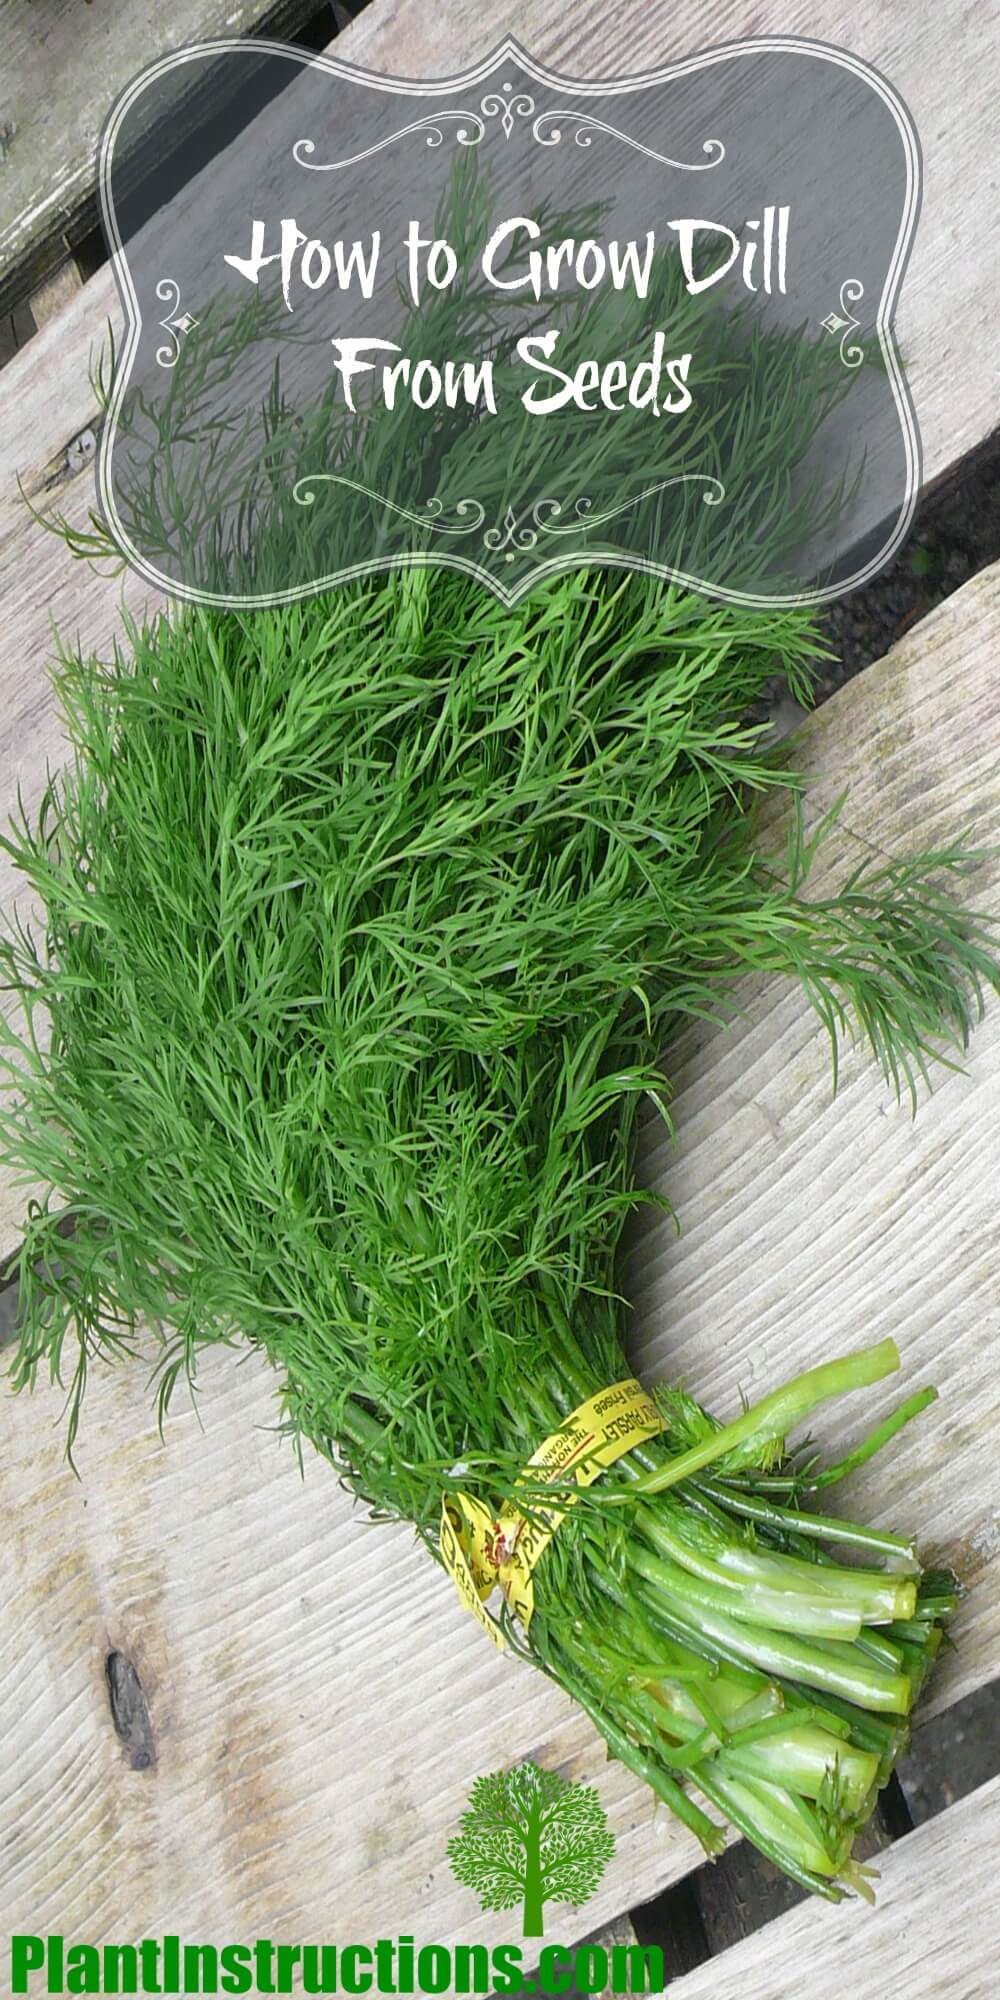 Grow Dill From Seeds